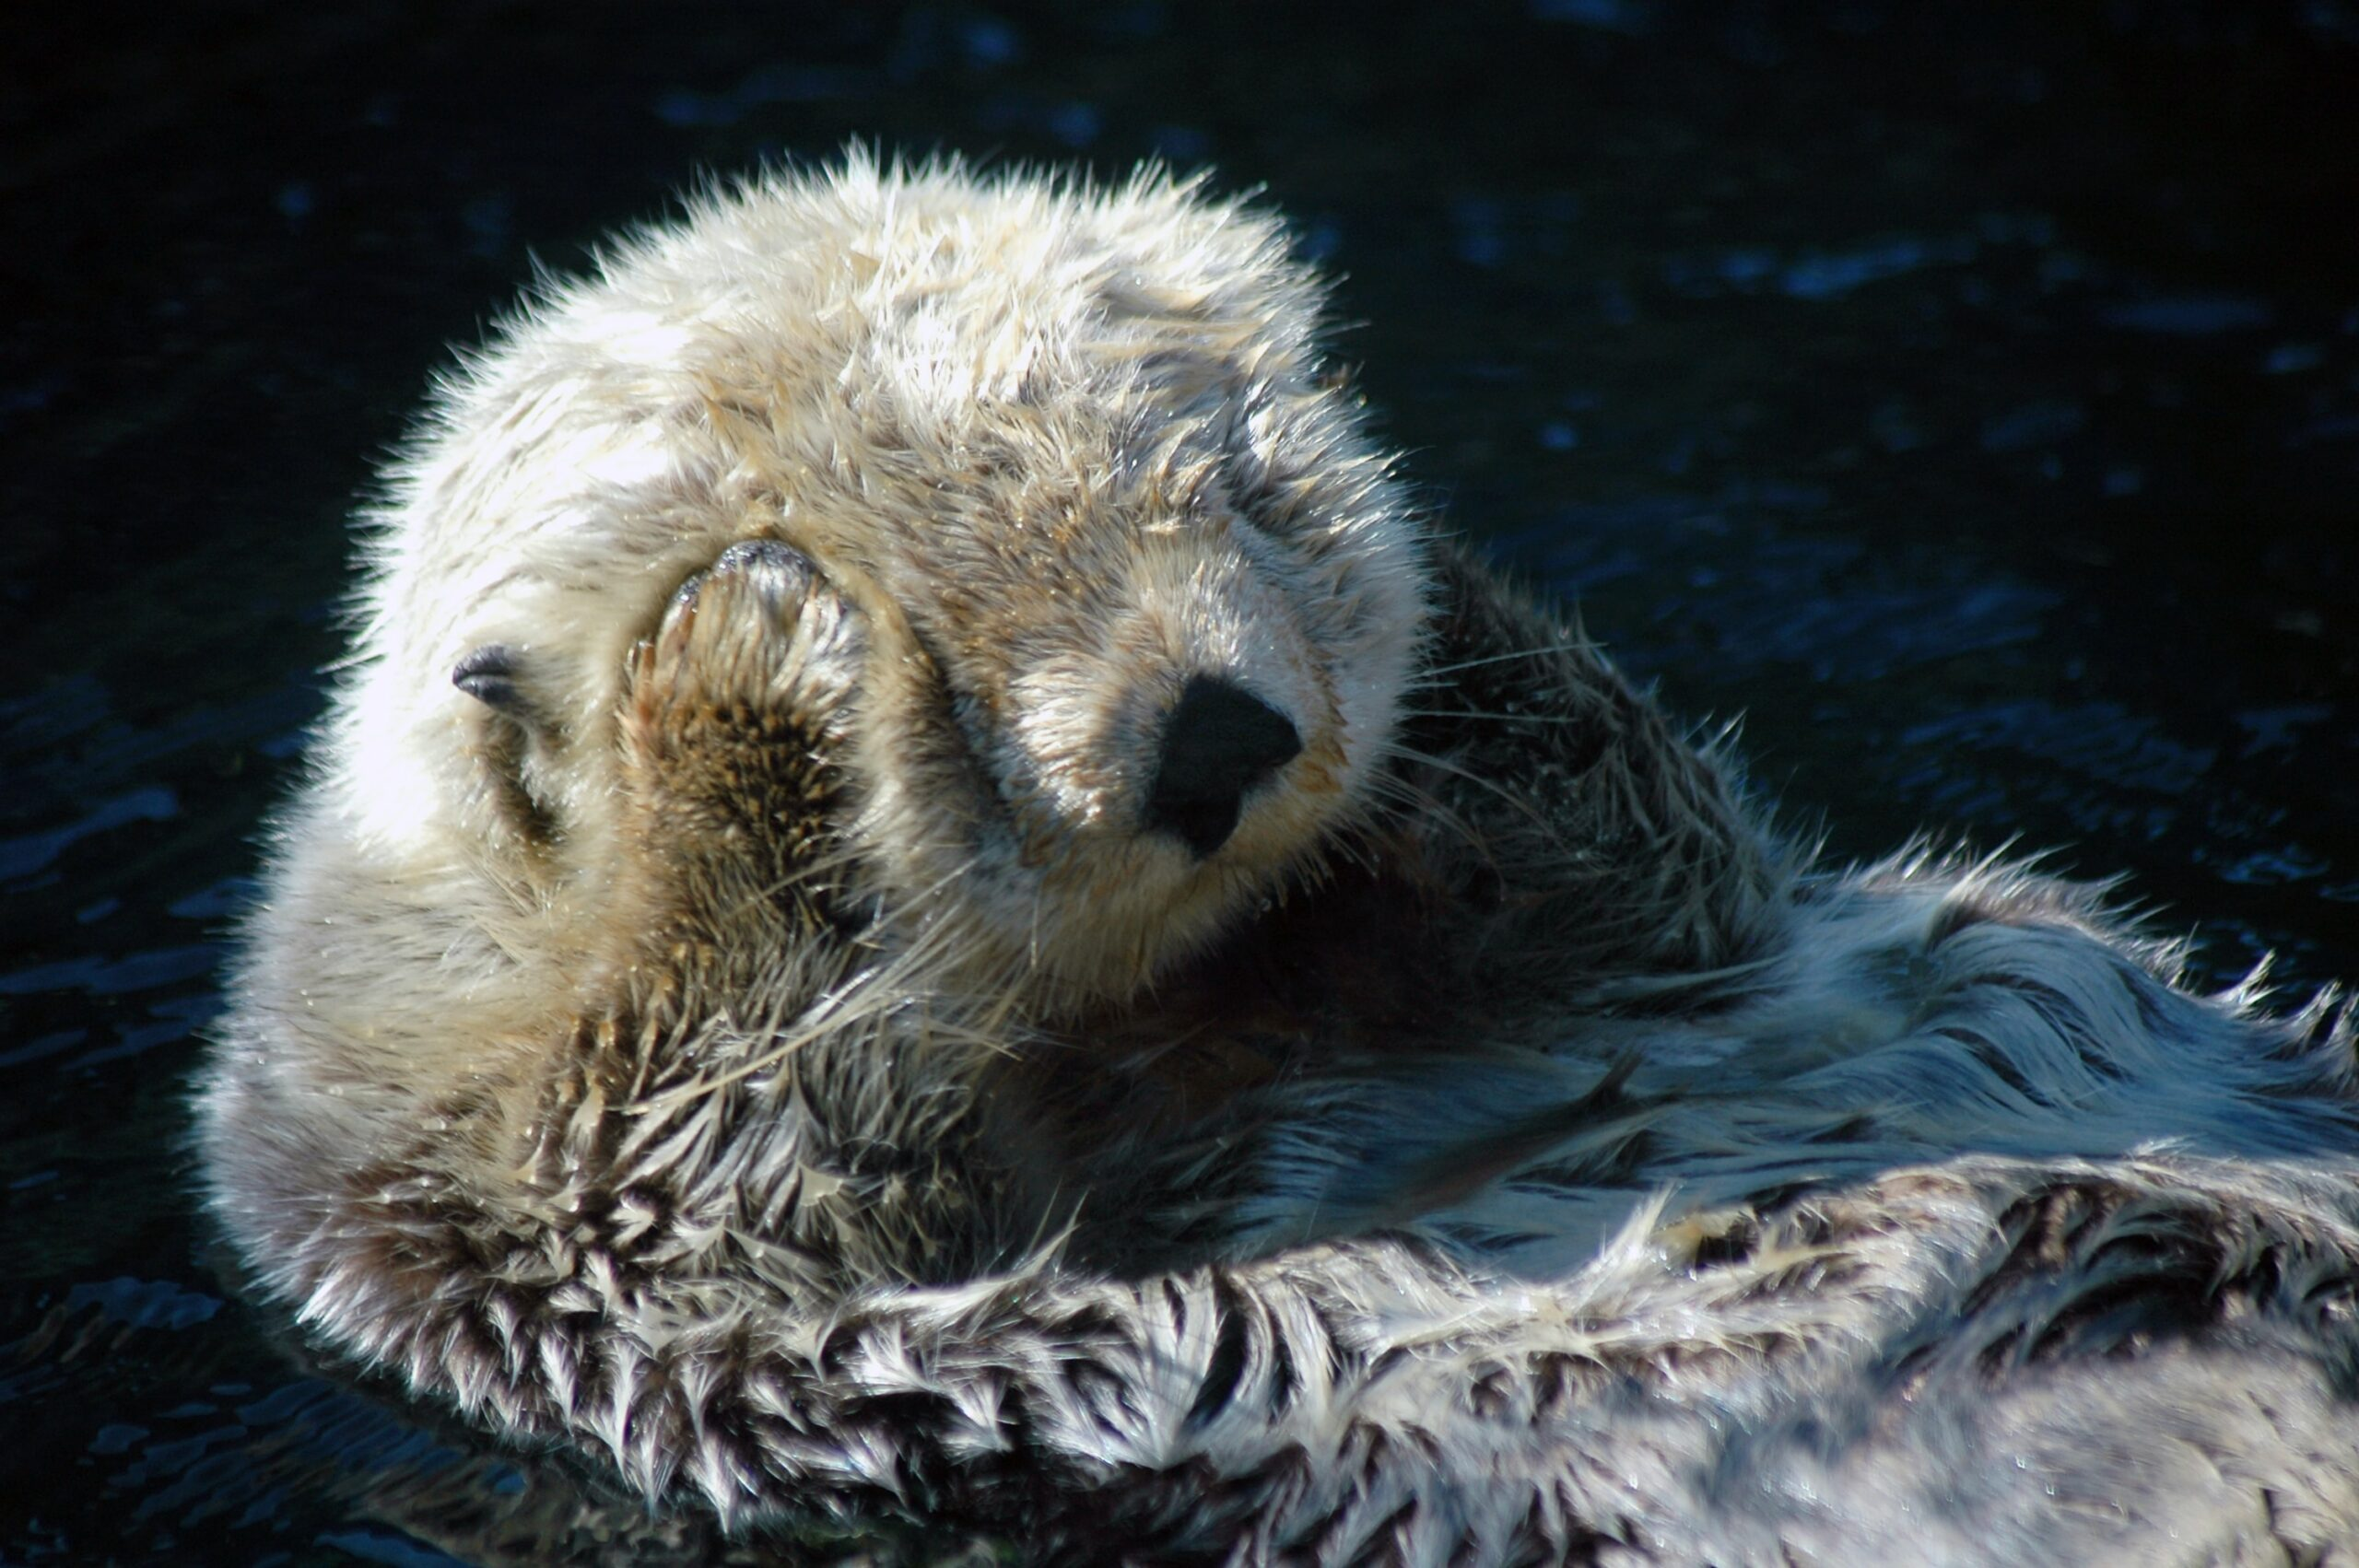 Lawsuit Challenges Federal Failure to Update Marine Mammal Assessments